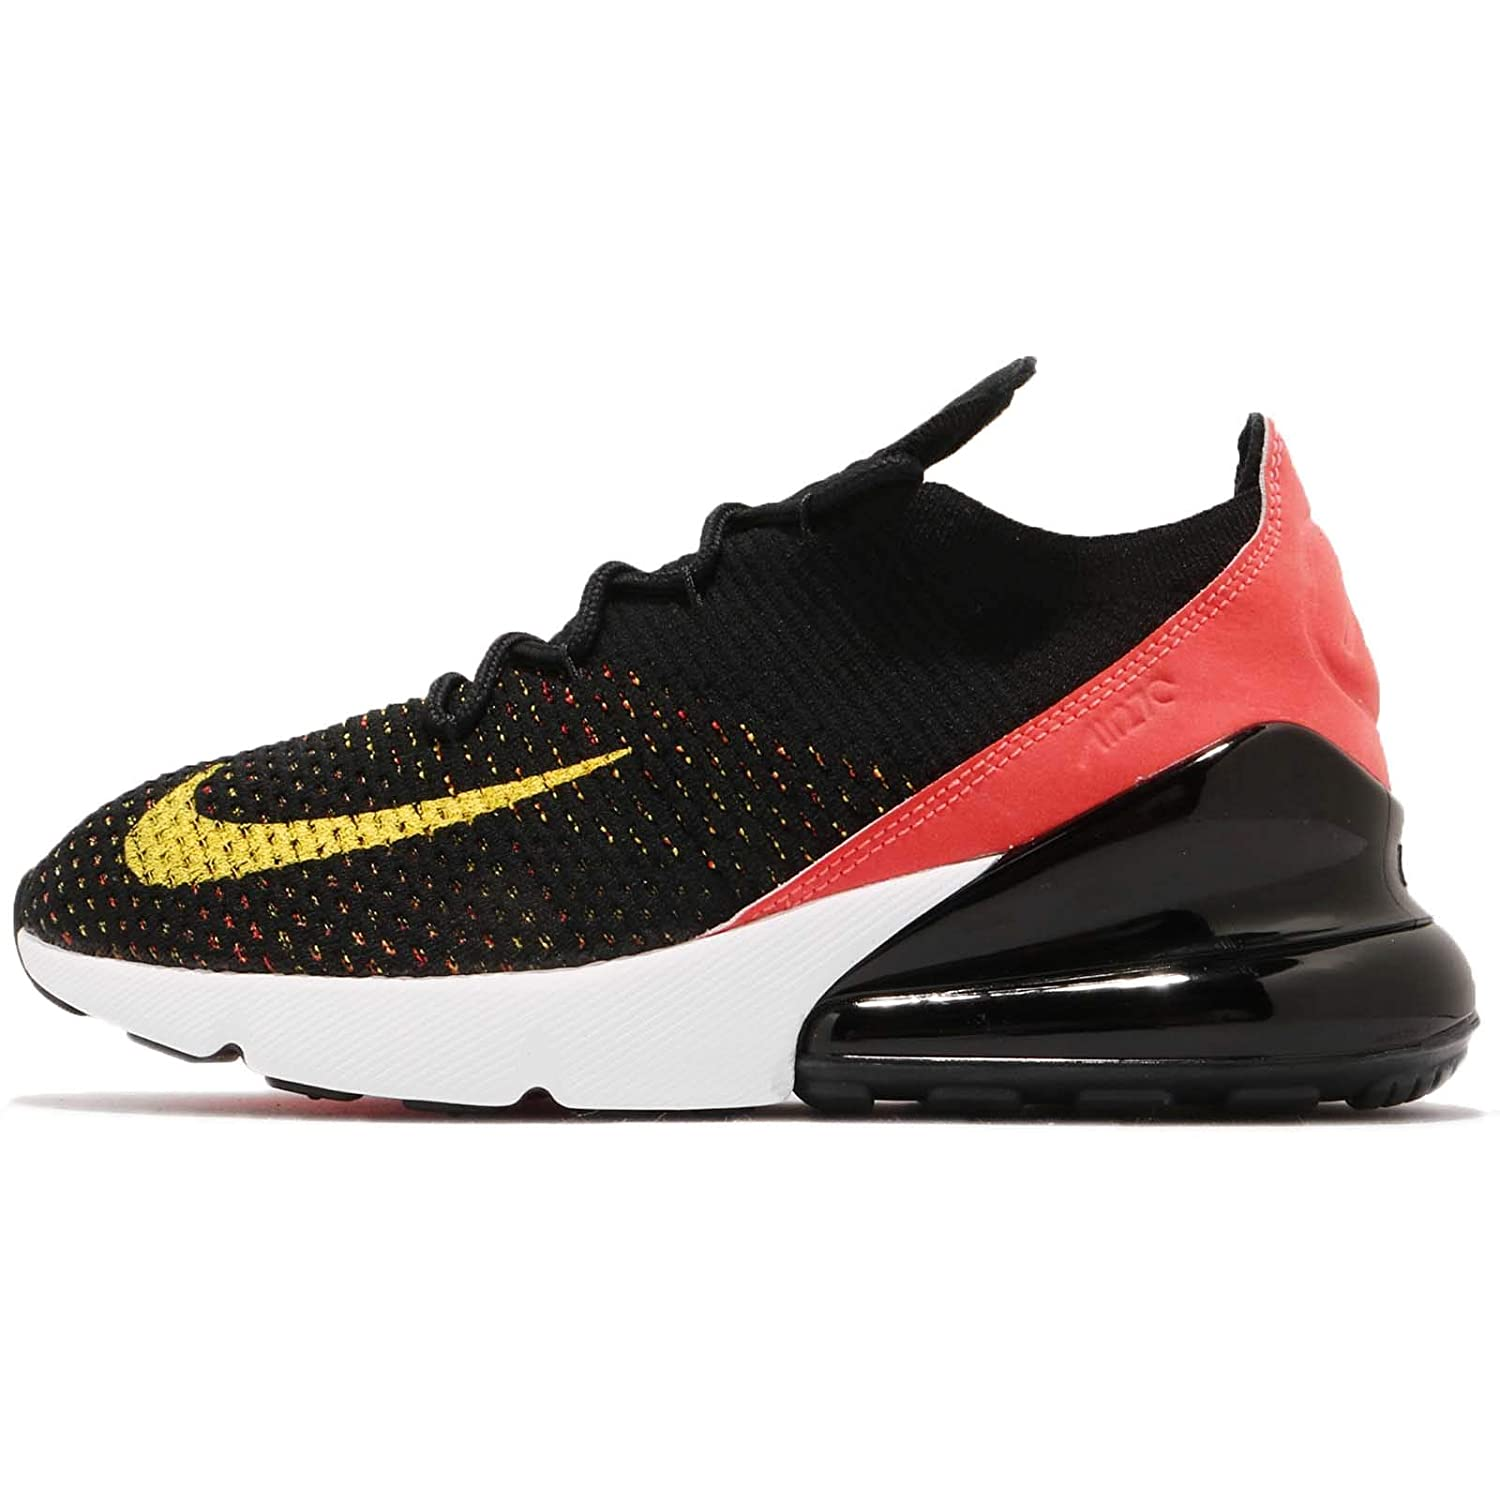 Nike Women's W Air Max 270 Flyknit Fitness Shoes